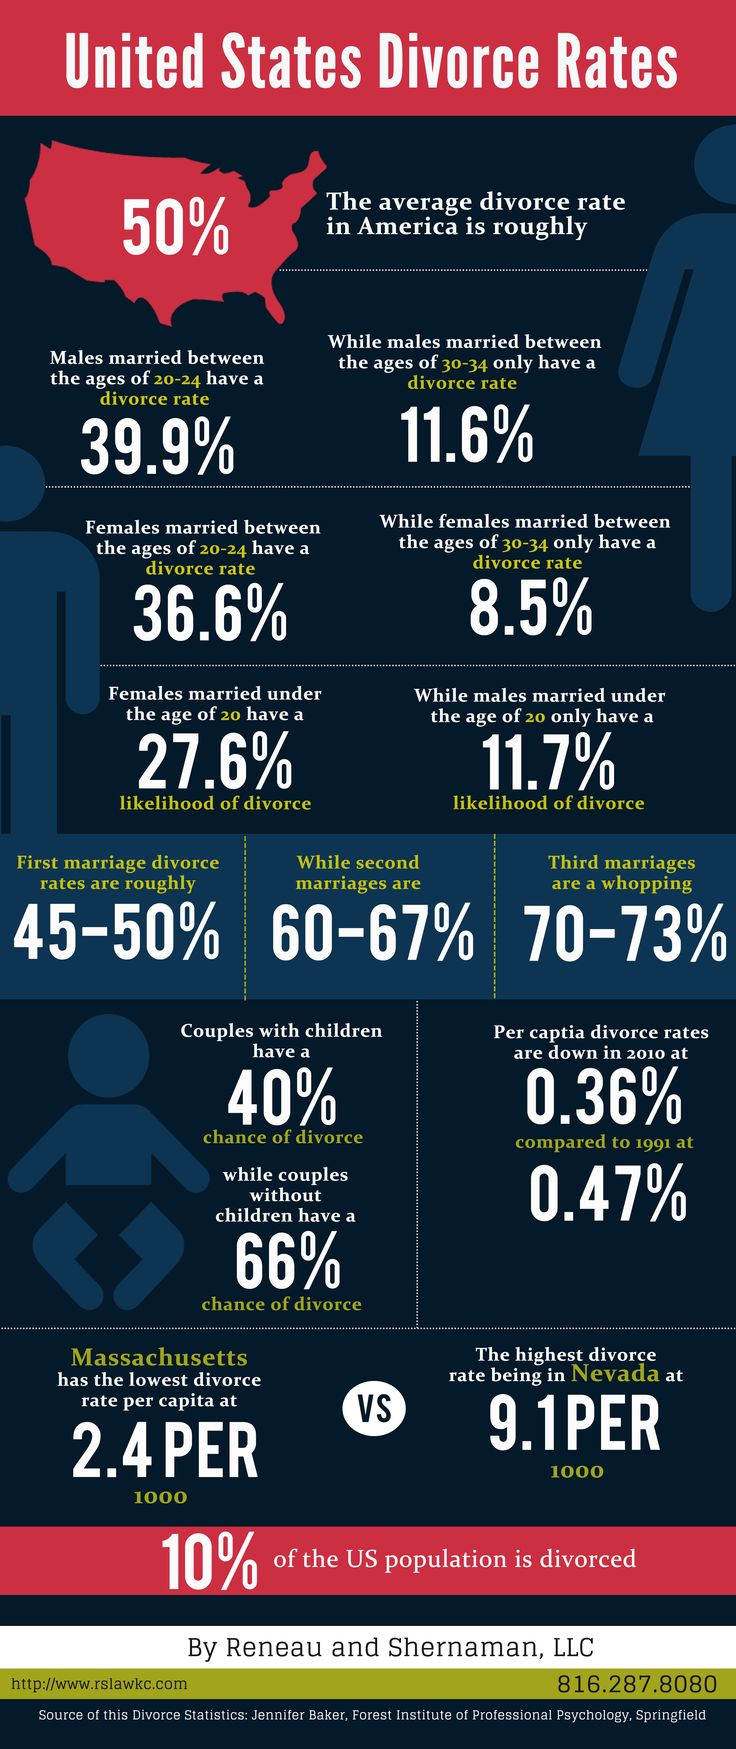 33 best infographics images on pinterest infographic infographics this is a great infographic put together by reneau shernaman llc comparing divorce rates in america the kansas city divorce lawyers compared rates per solutioingenieria Images